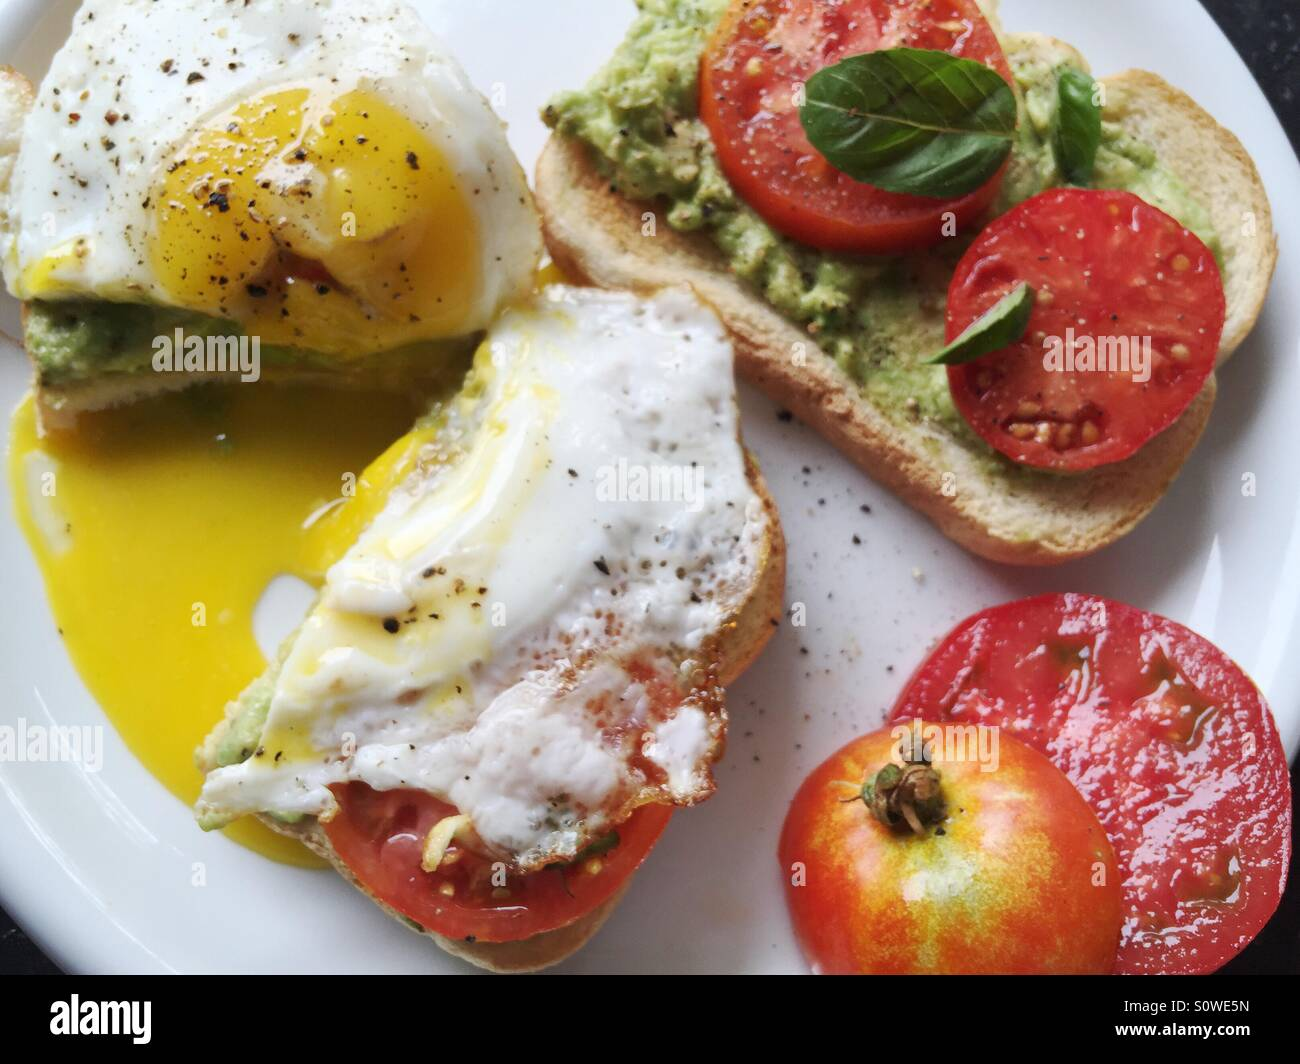 Fried egg with tomato and mashed avocado - Stock Image